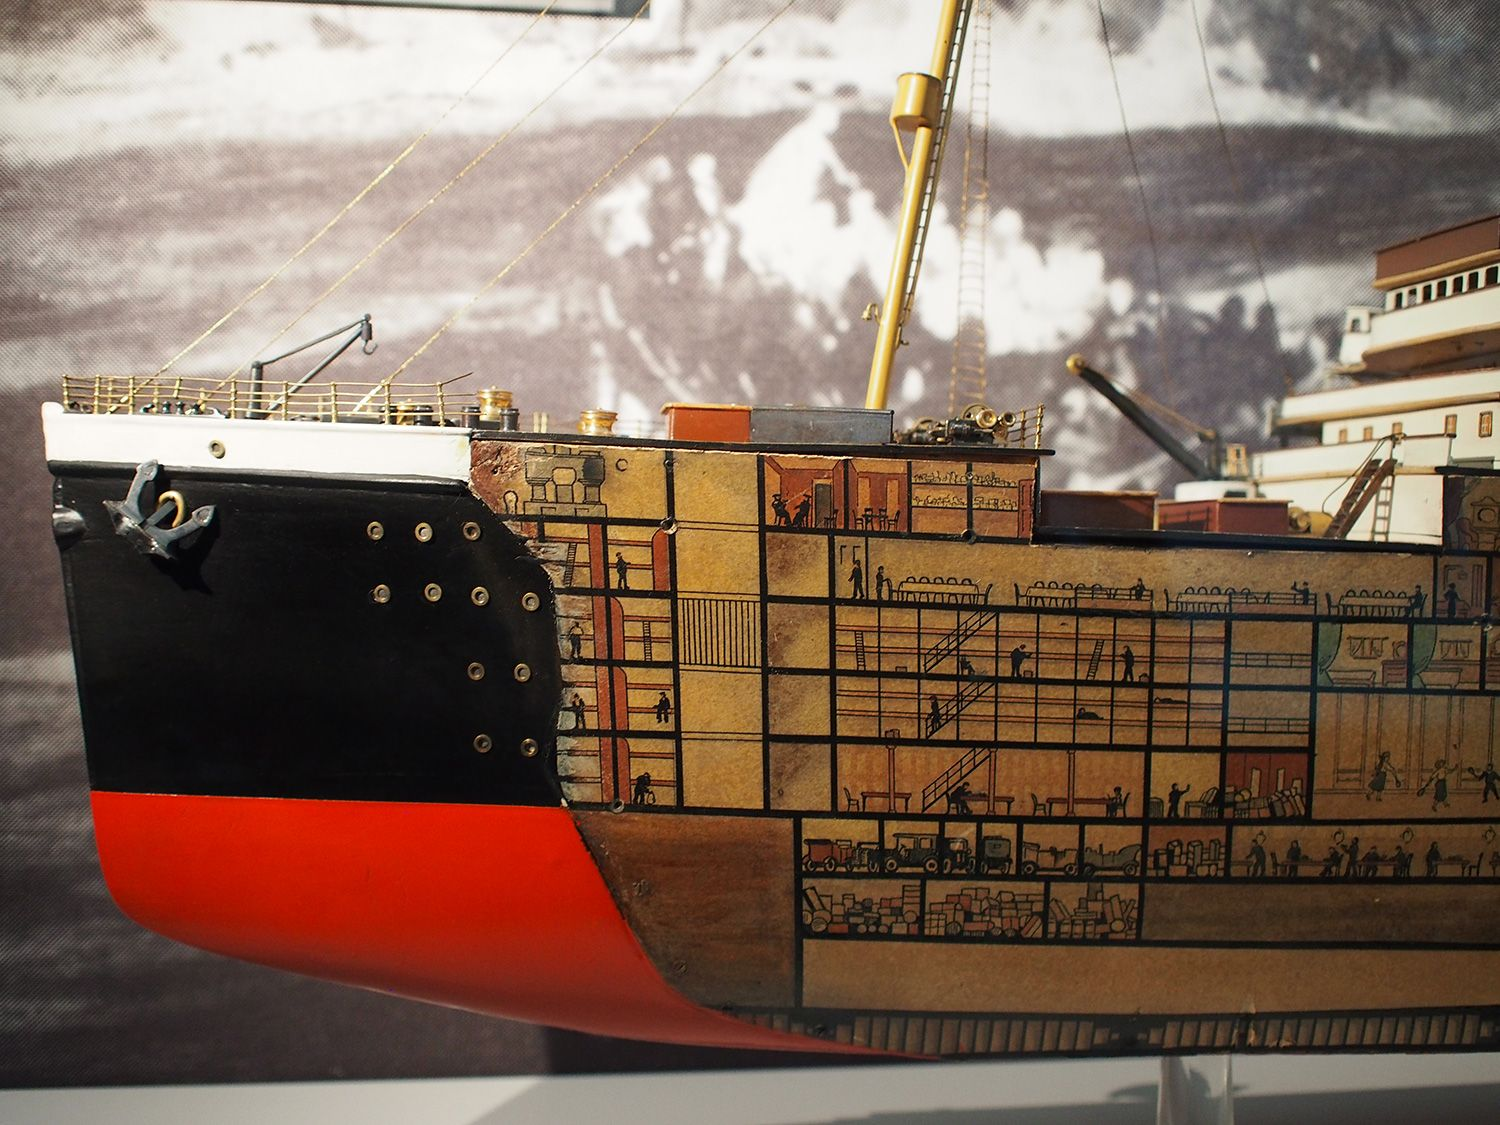 inside the titanic diagram coffee maker schematic cutaway model scale 1 144 of passenger liner ts